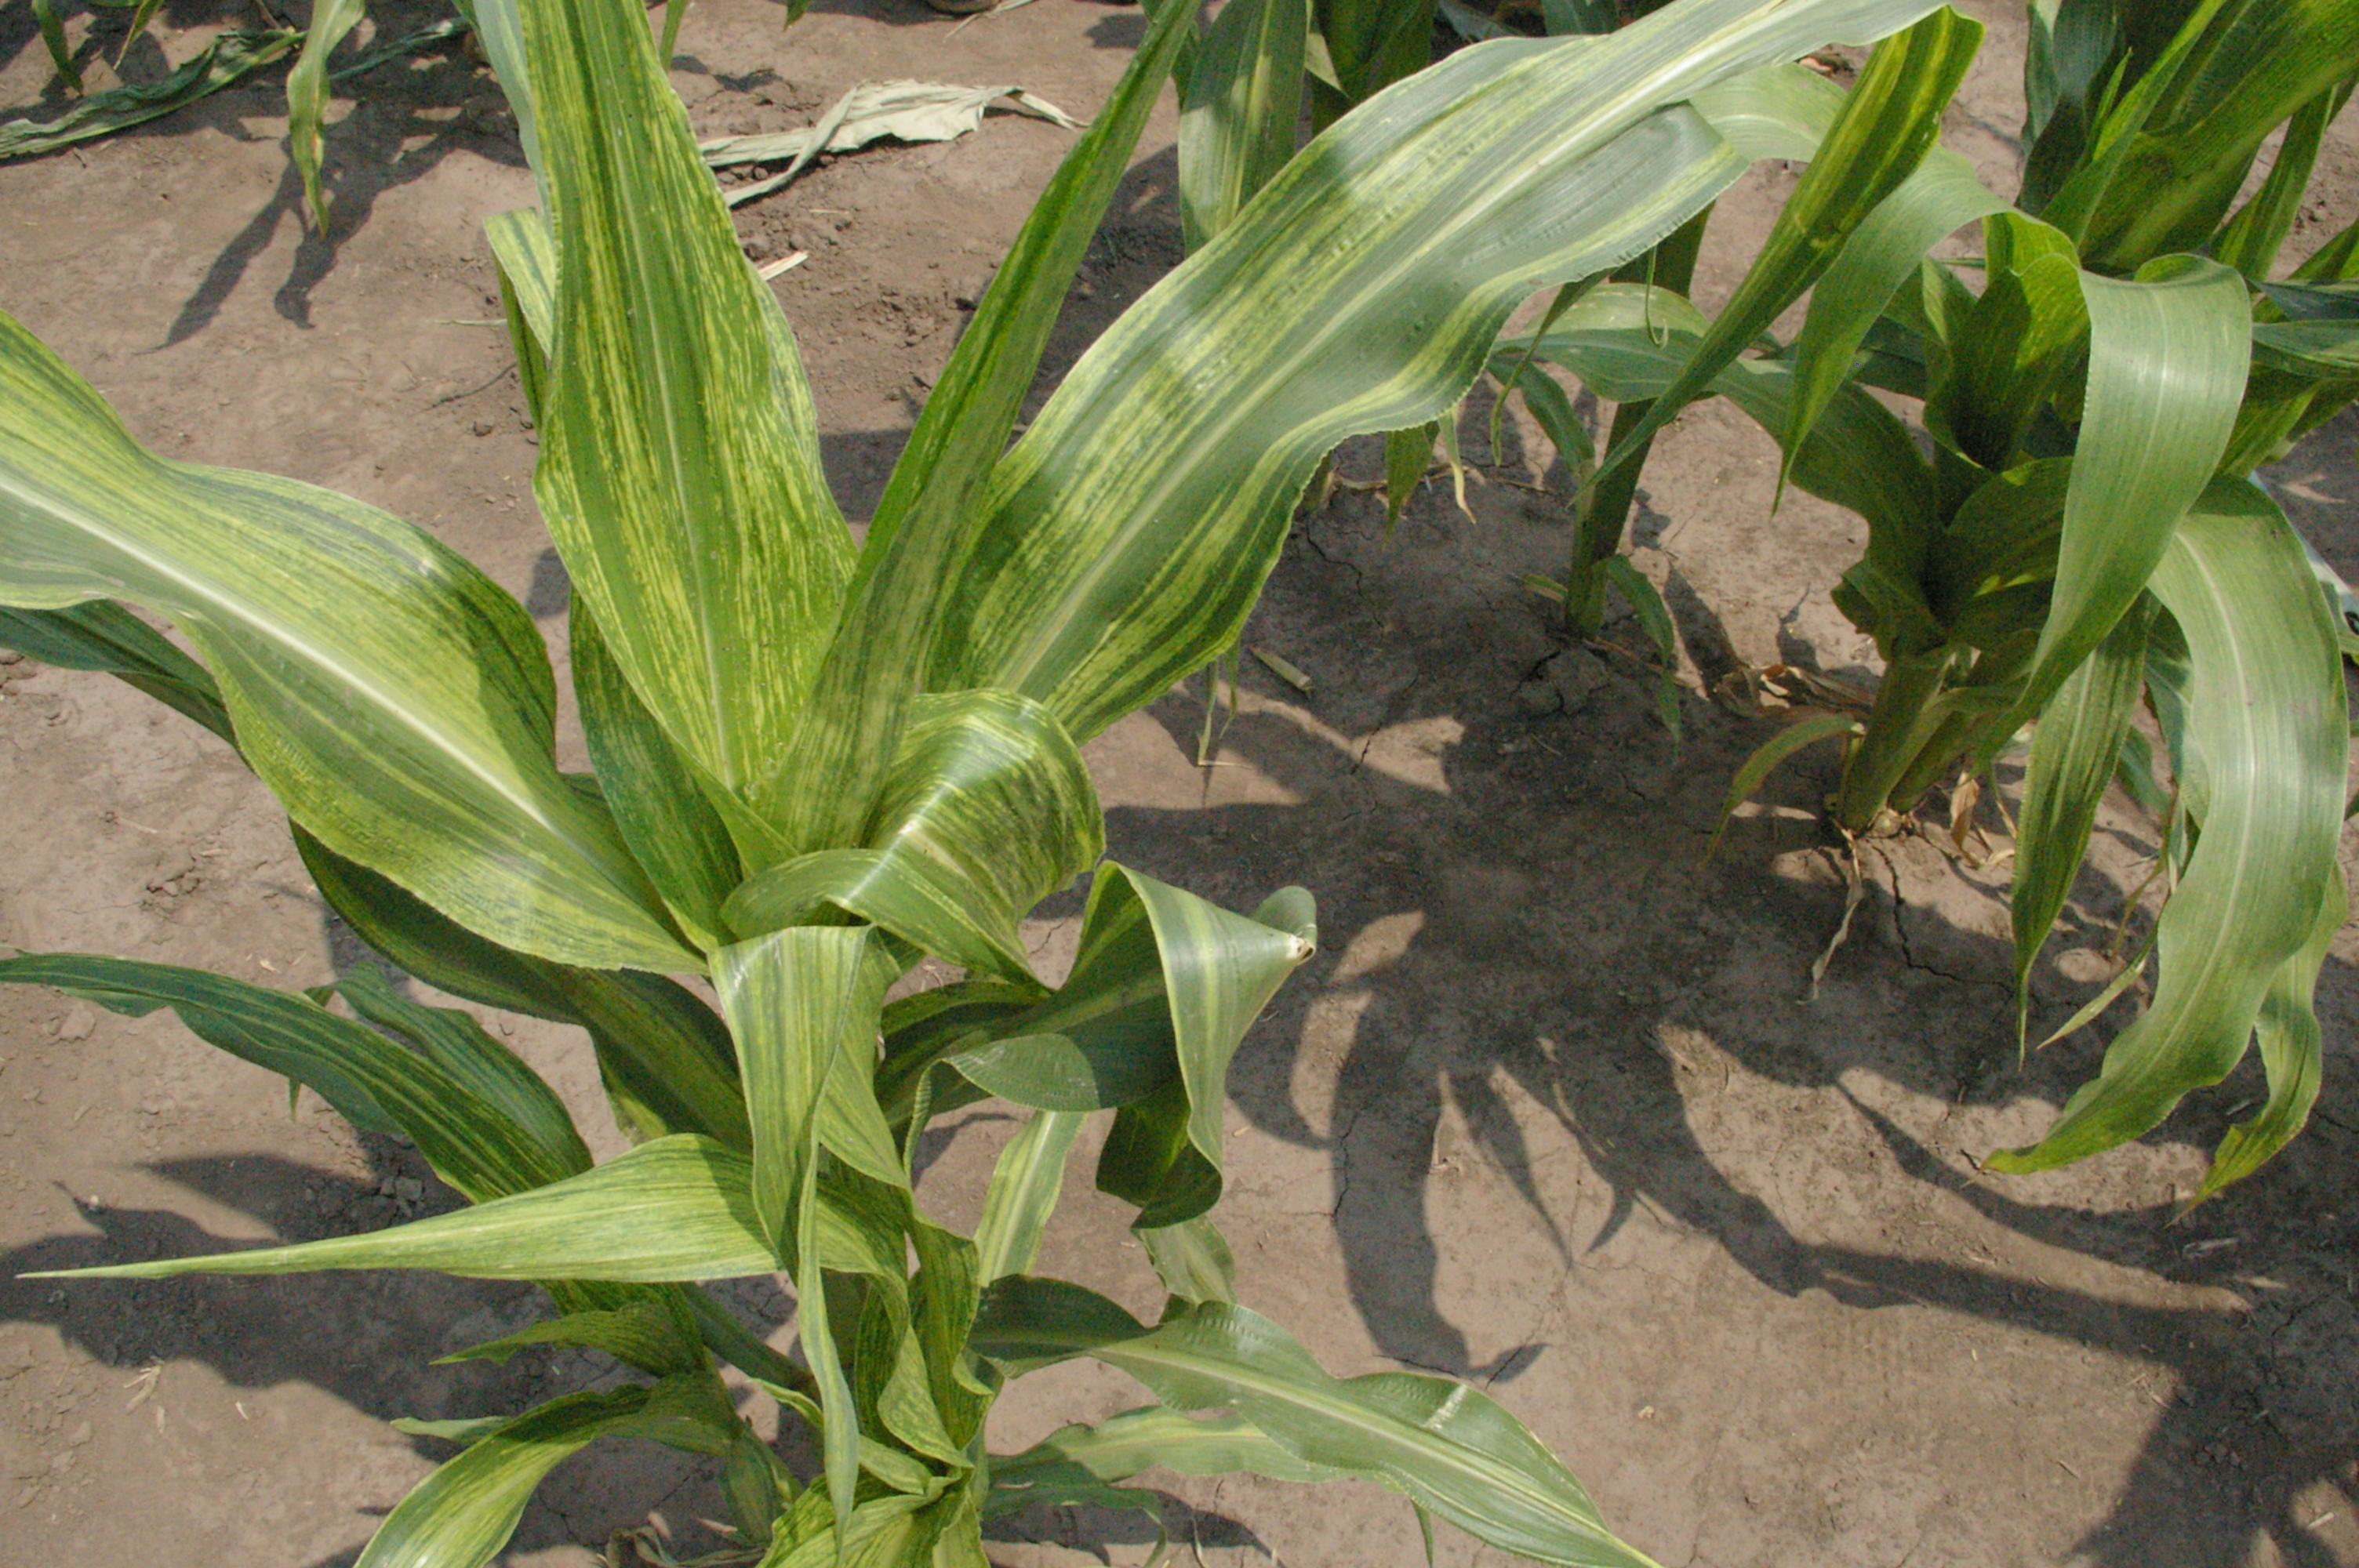 Yellowish streaks on leaves symptomatic of maize dwarf mosaic.